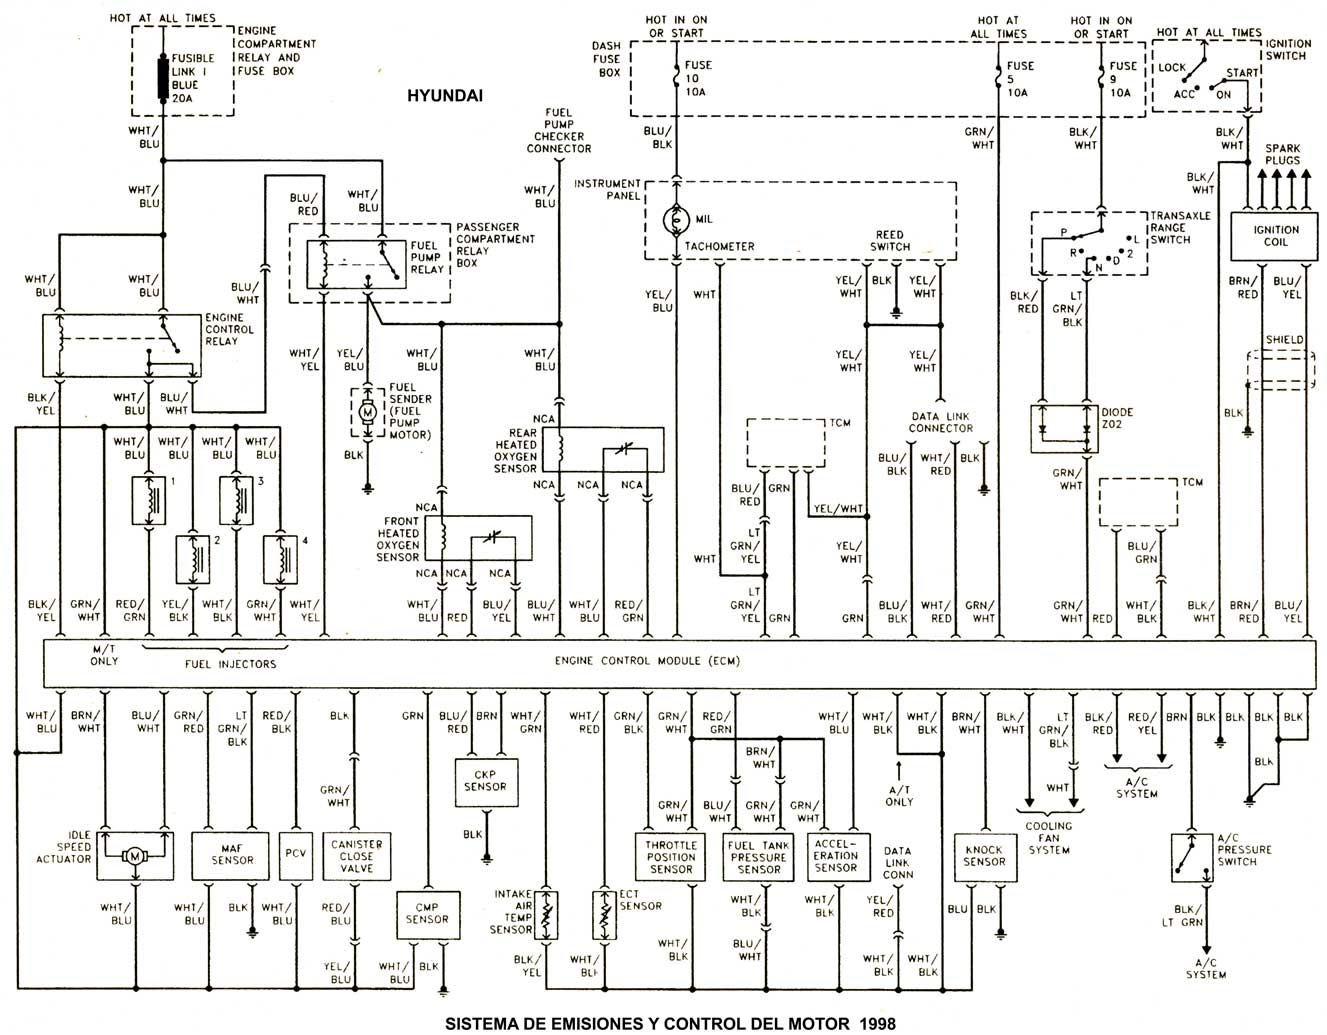 1996 Hyundai Accent Engine Diagram Simple Guide About Wiring 2012 1986 97 Diagramas Esquemas Ubicacion De